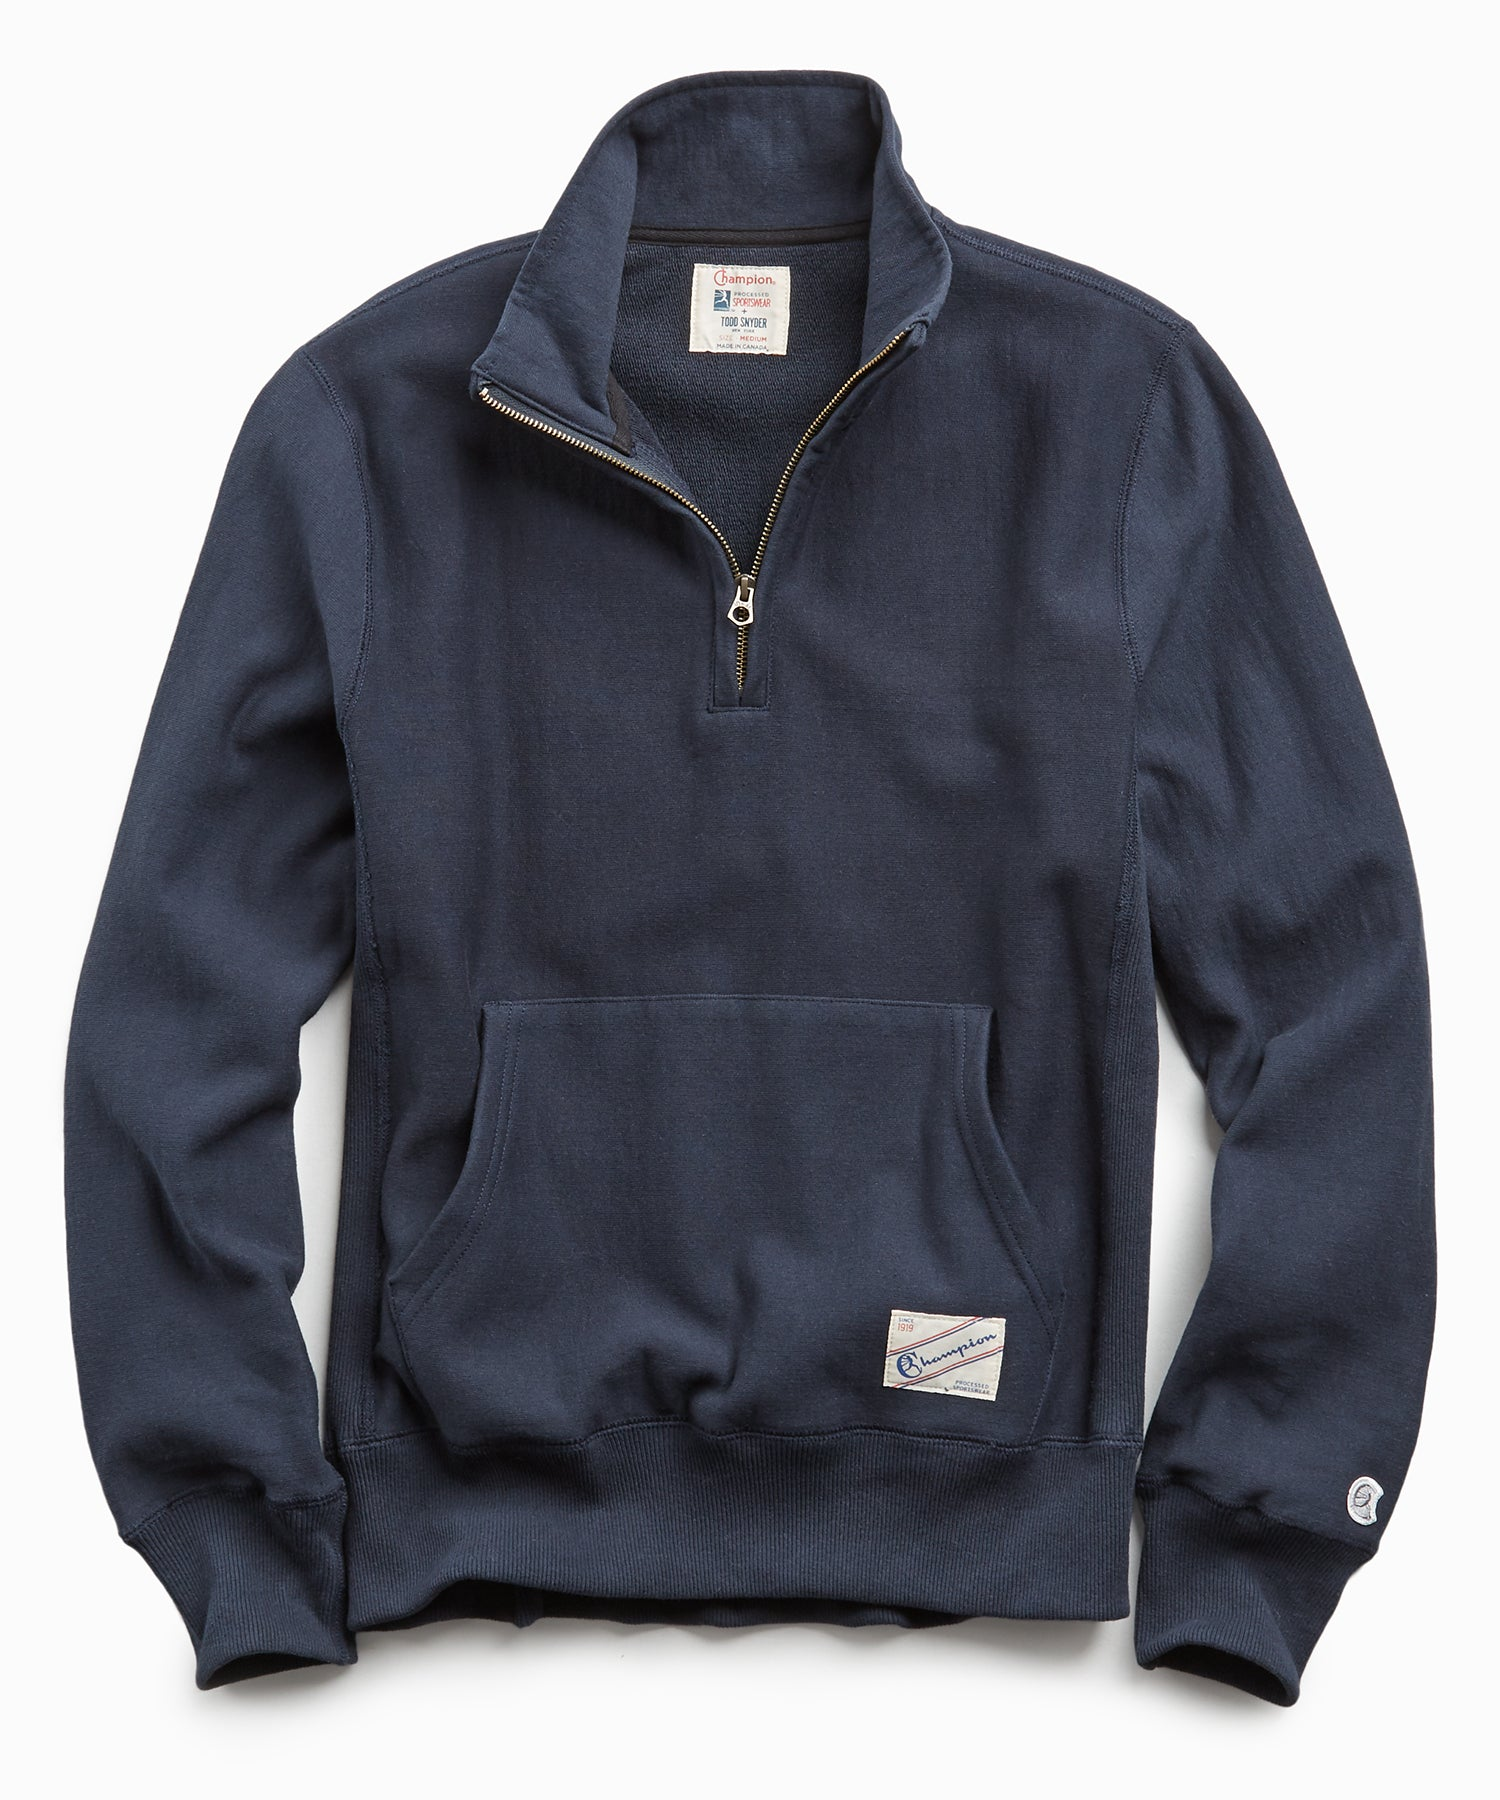 Lightweight Quarter Zip Reverse Weave Sweatshirt in Navy